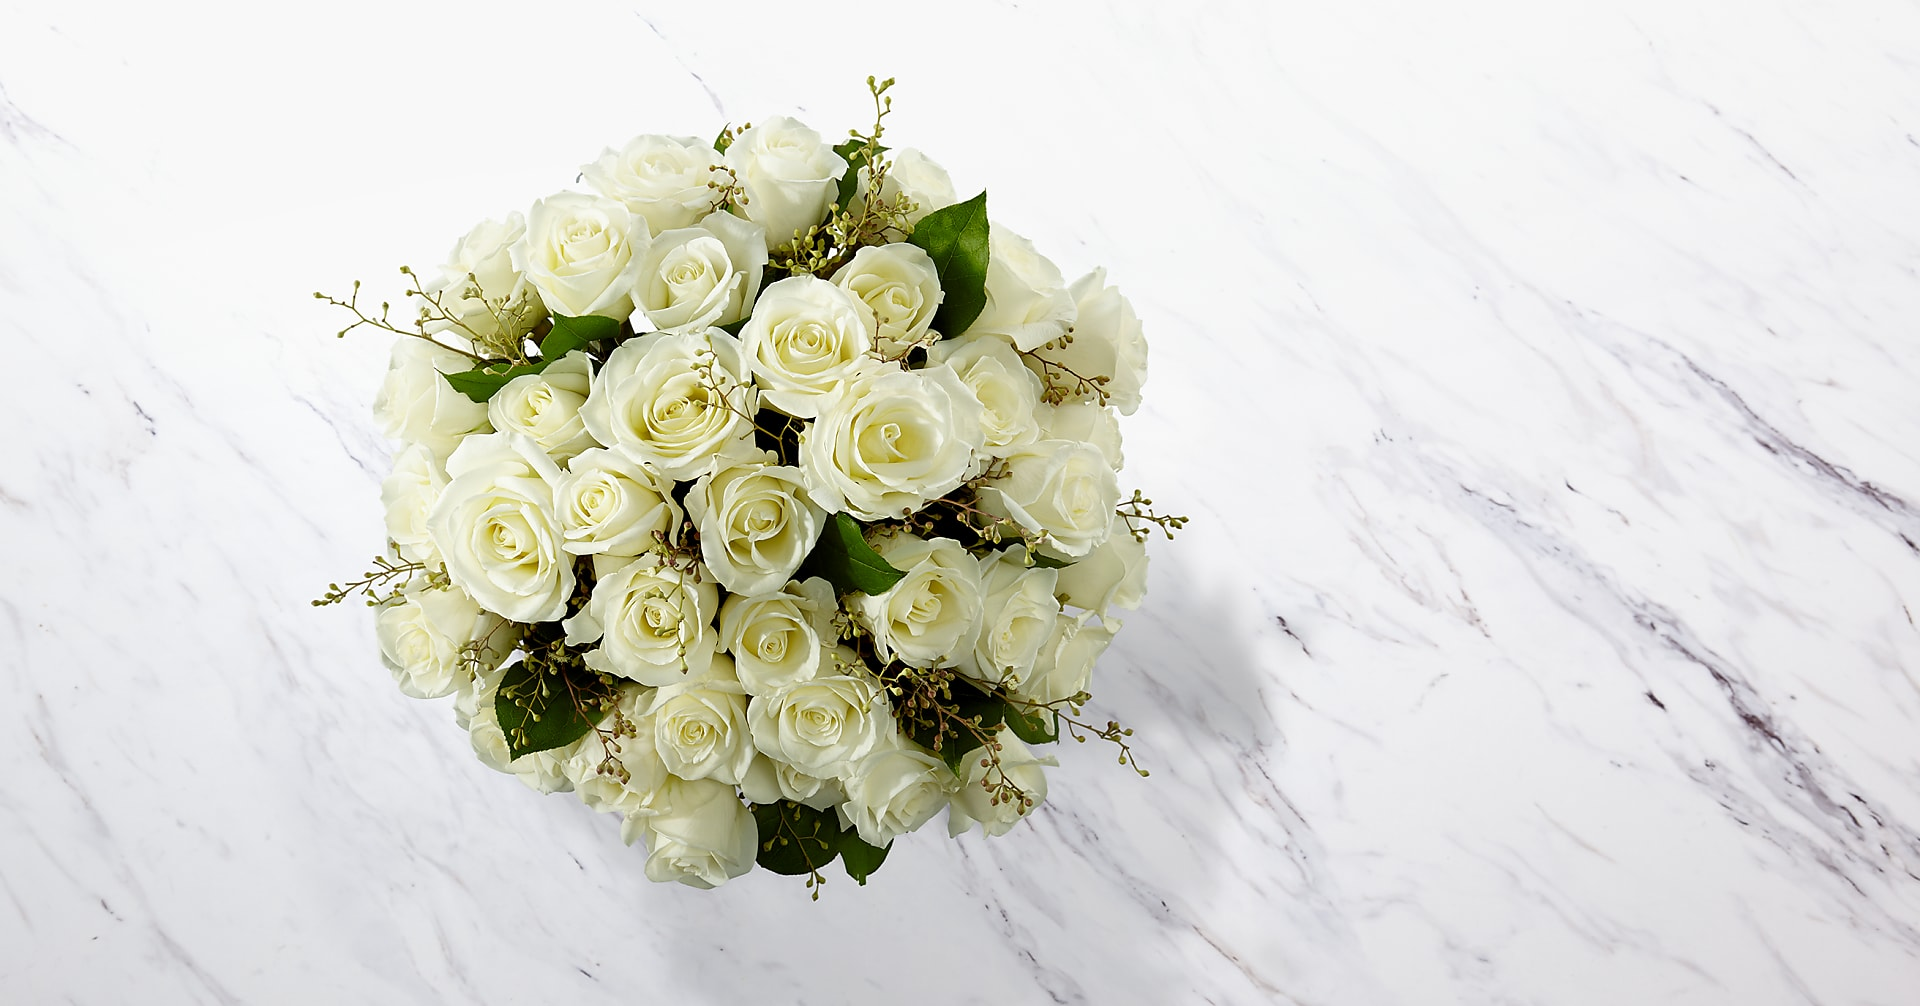 The White Rose Bouquet - 36 Stems - VASE INCLUDED - Image 2 Of 2